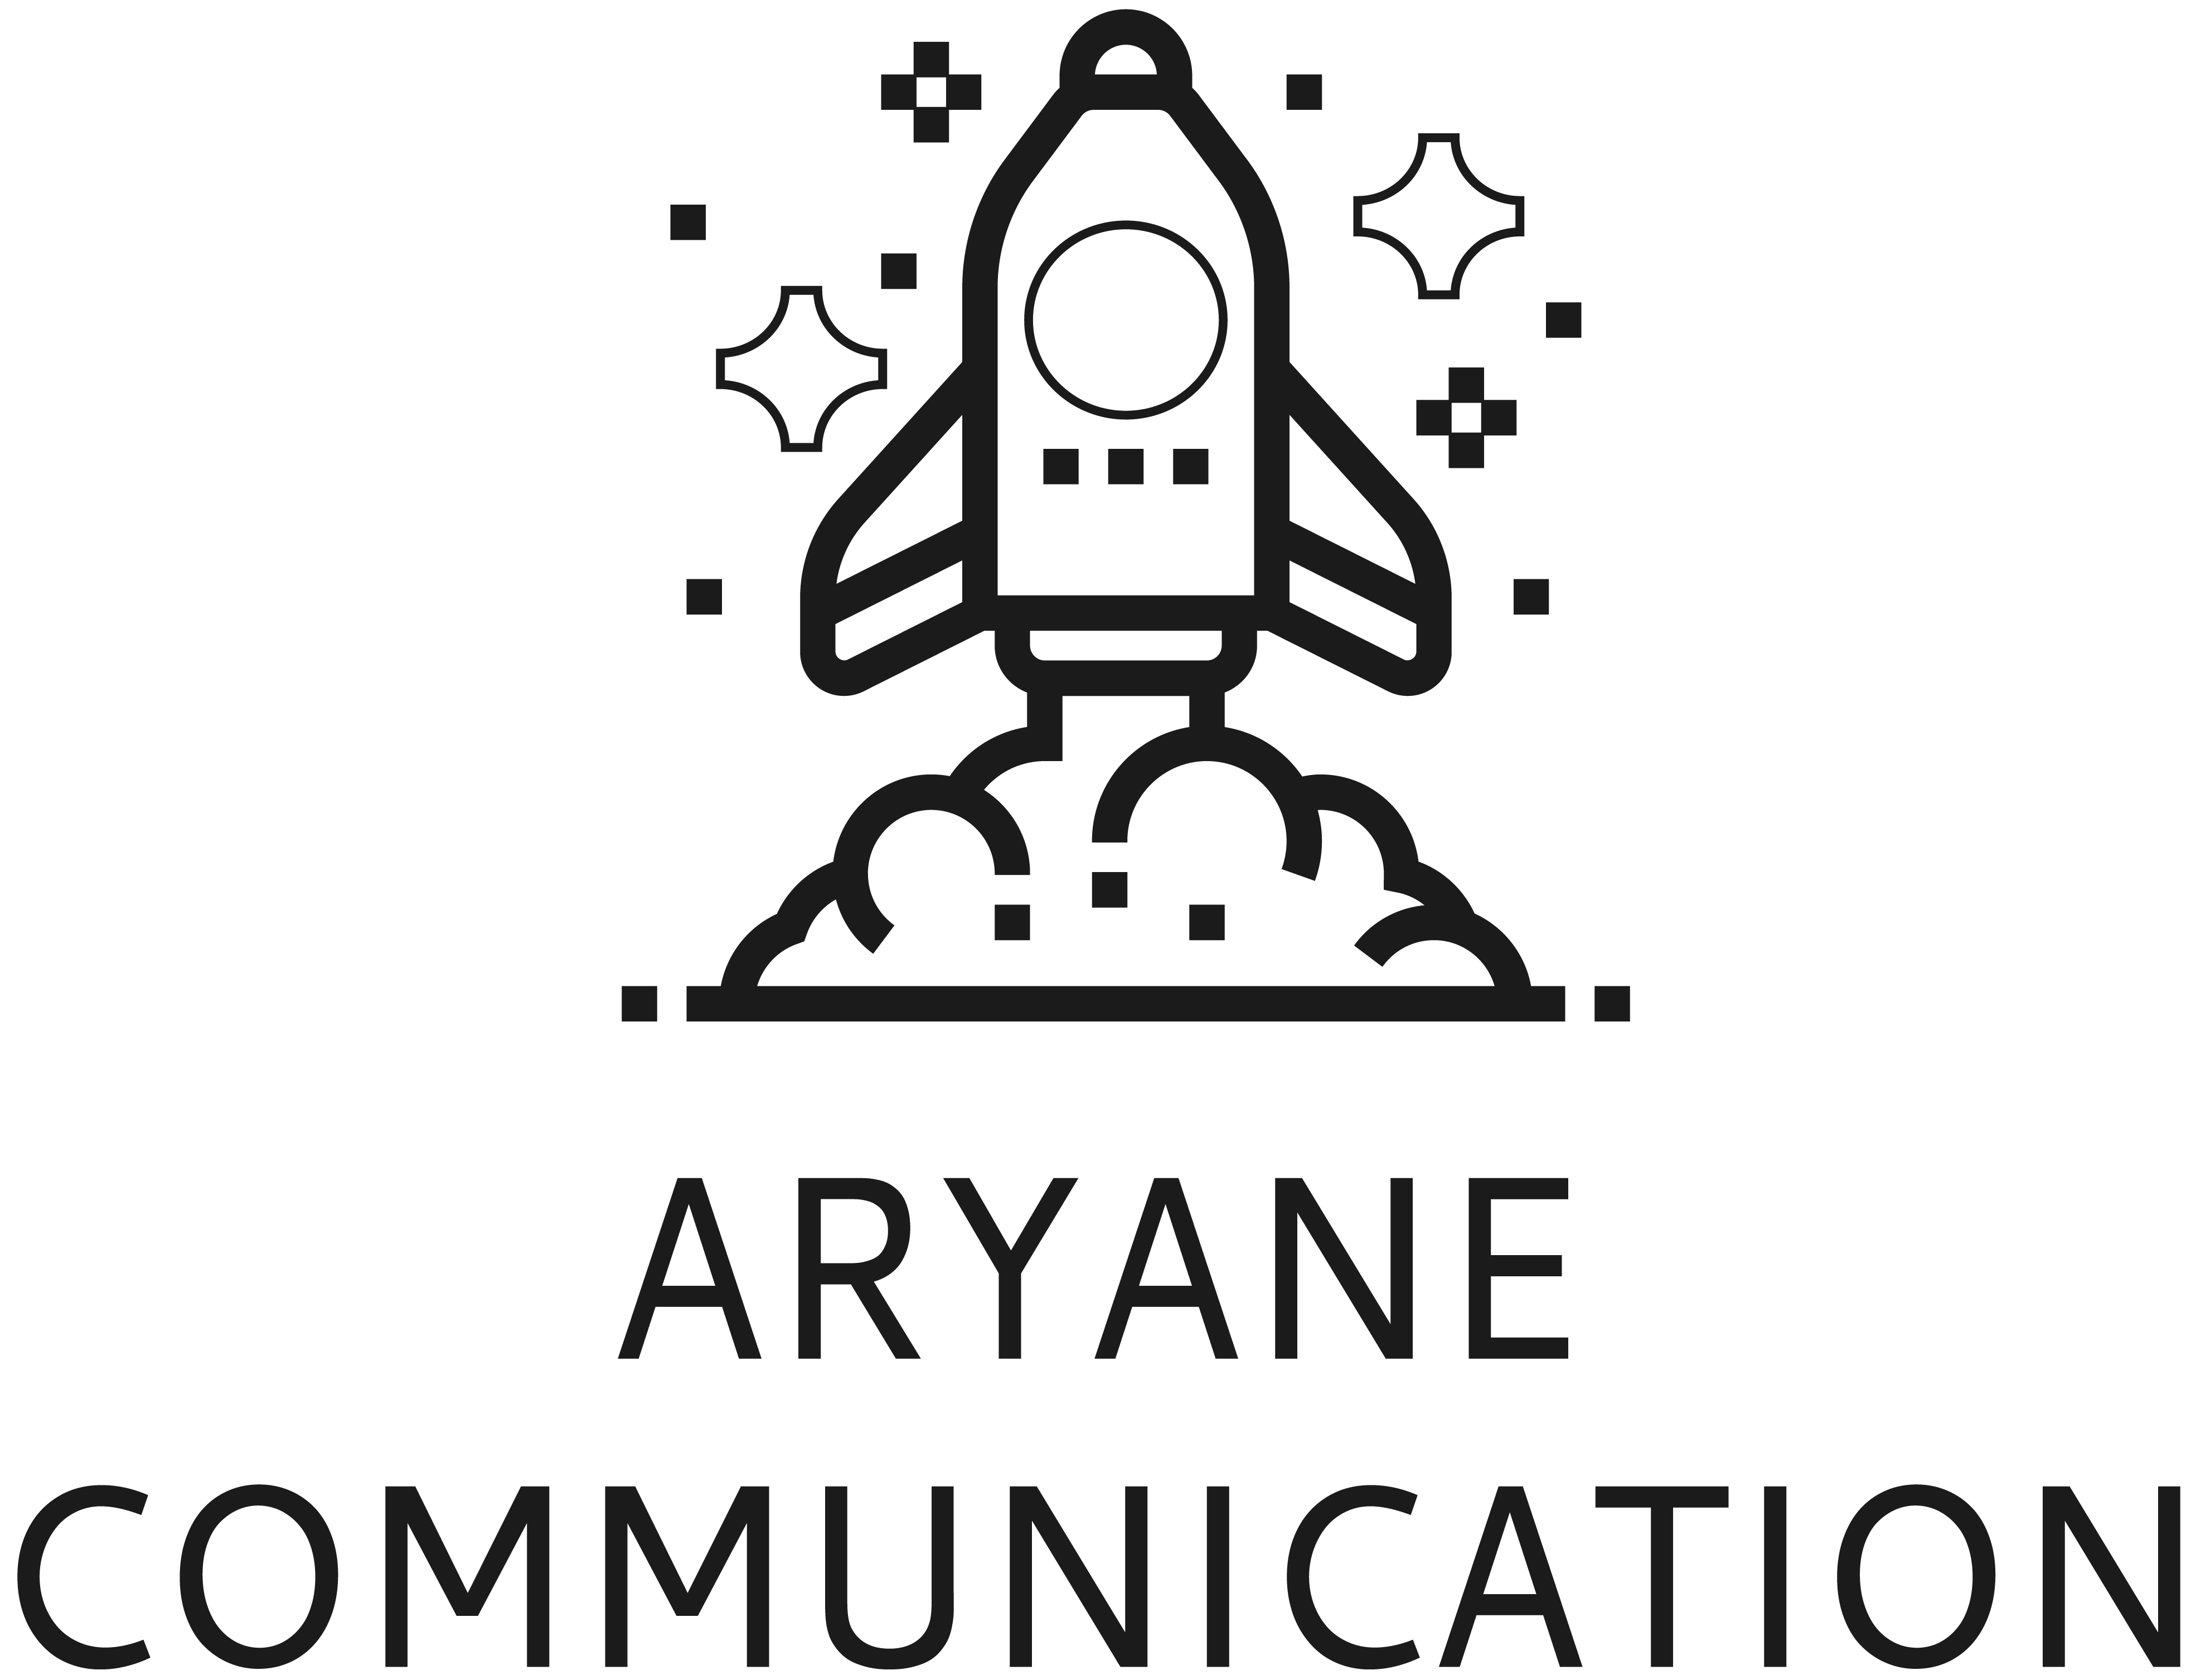 Aryane communication